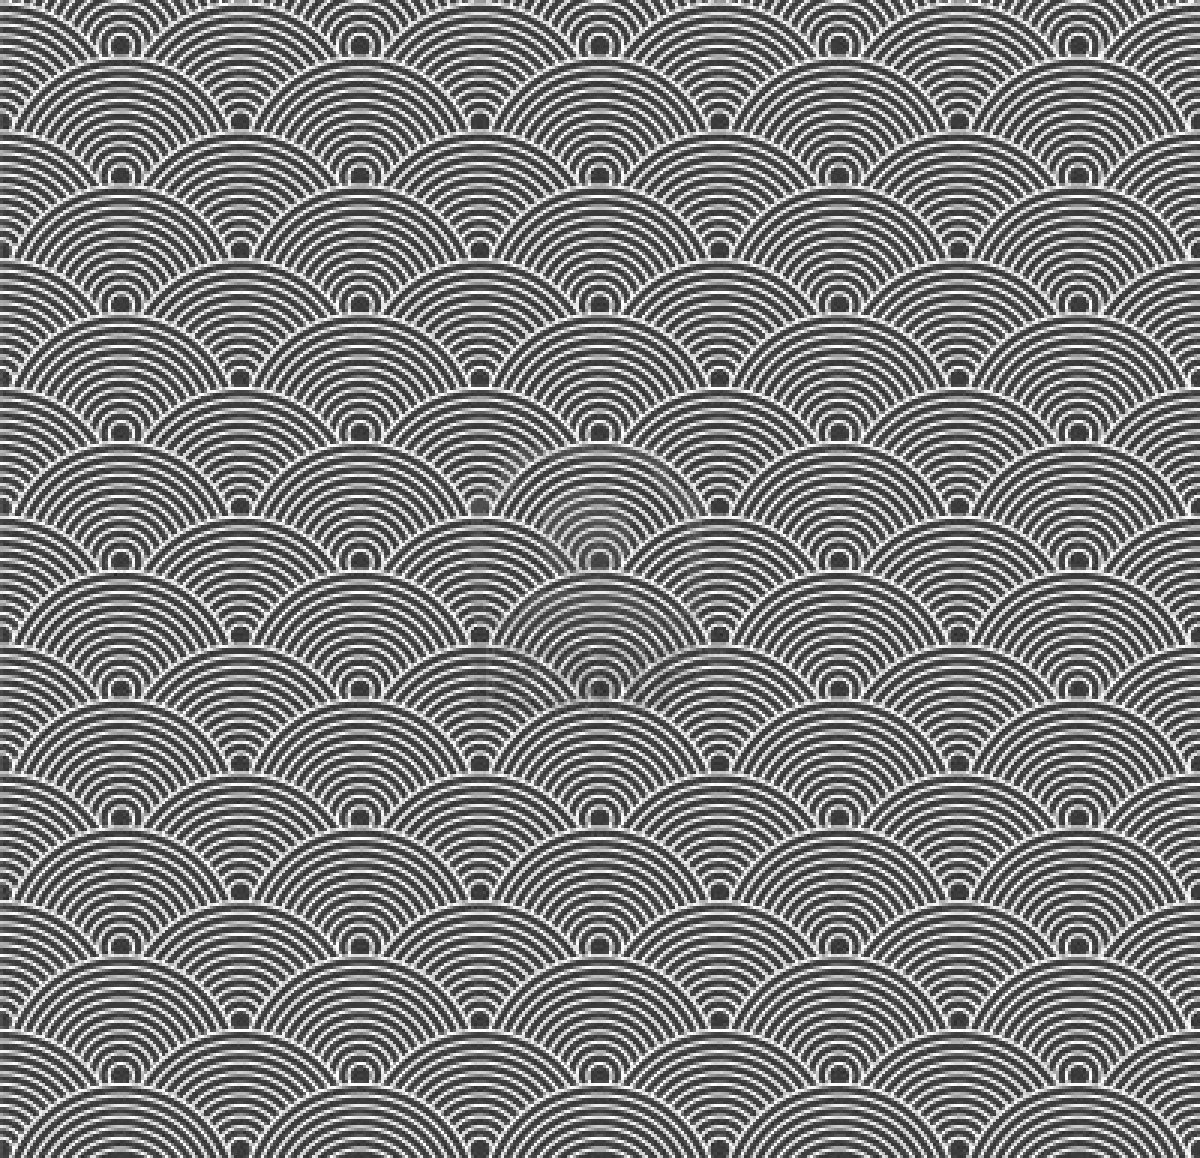 15802359-seamless-abstract-gray-pattern-with-circles